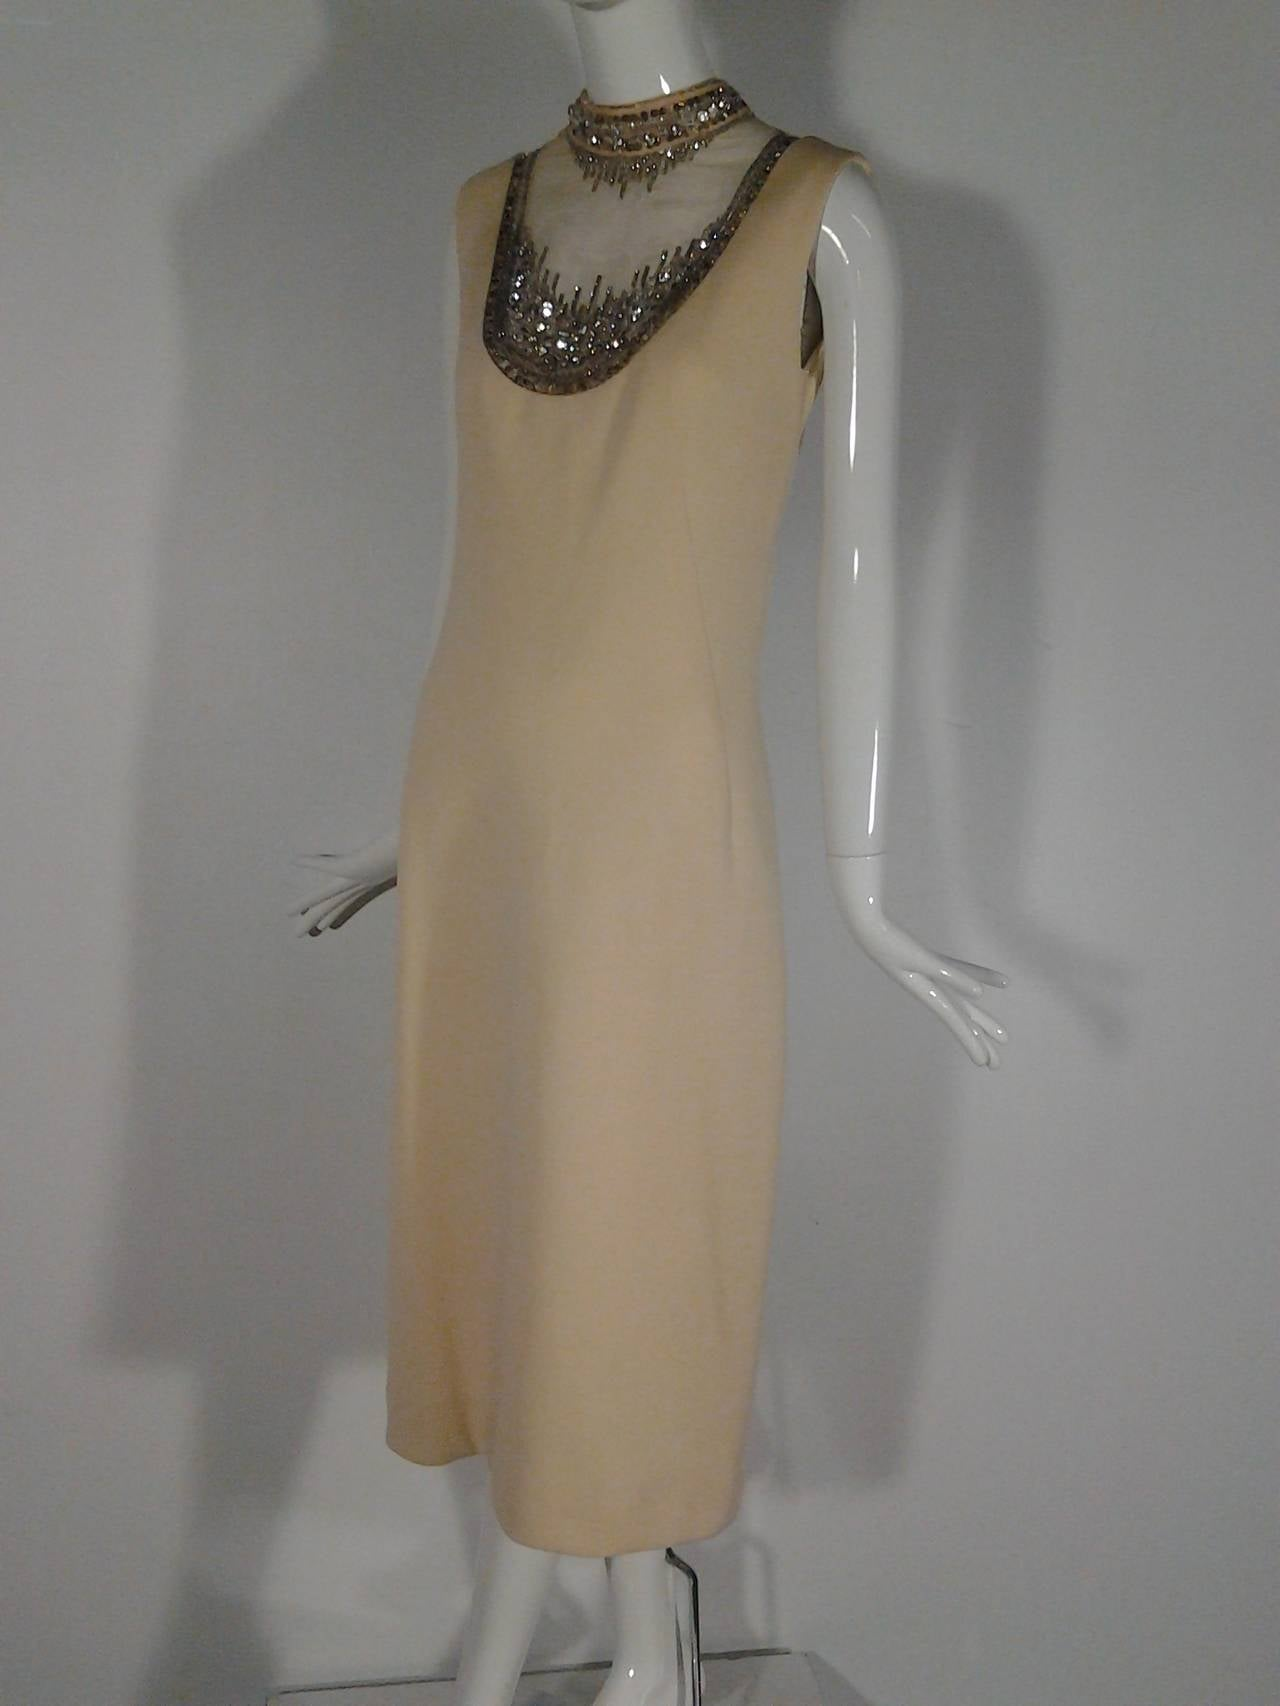 Mr Blackwell Cocktail Dress with Nude Panel and Elaborate Rhinestones 3